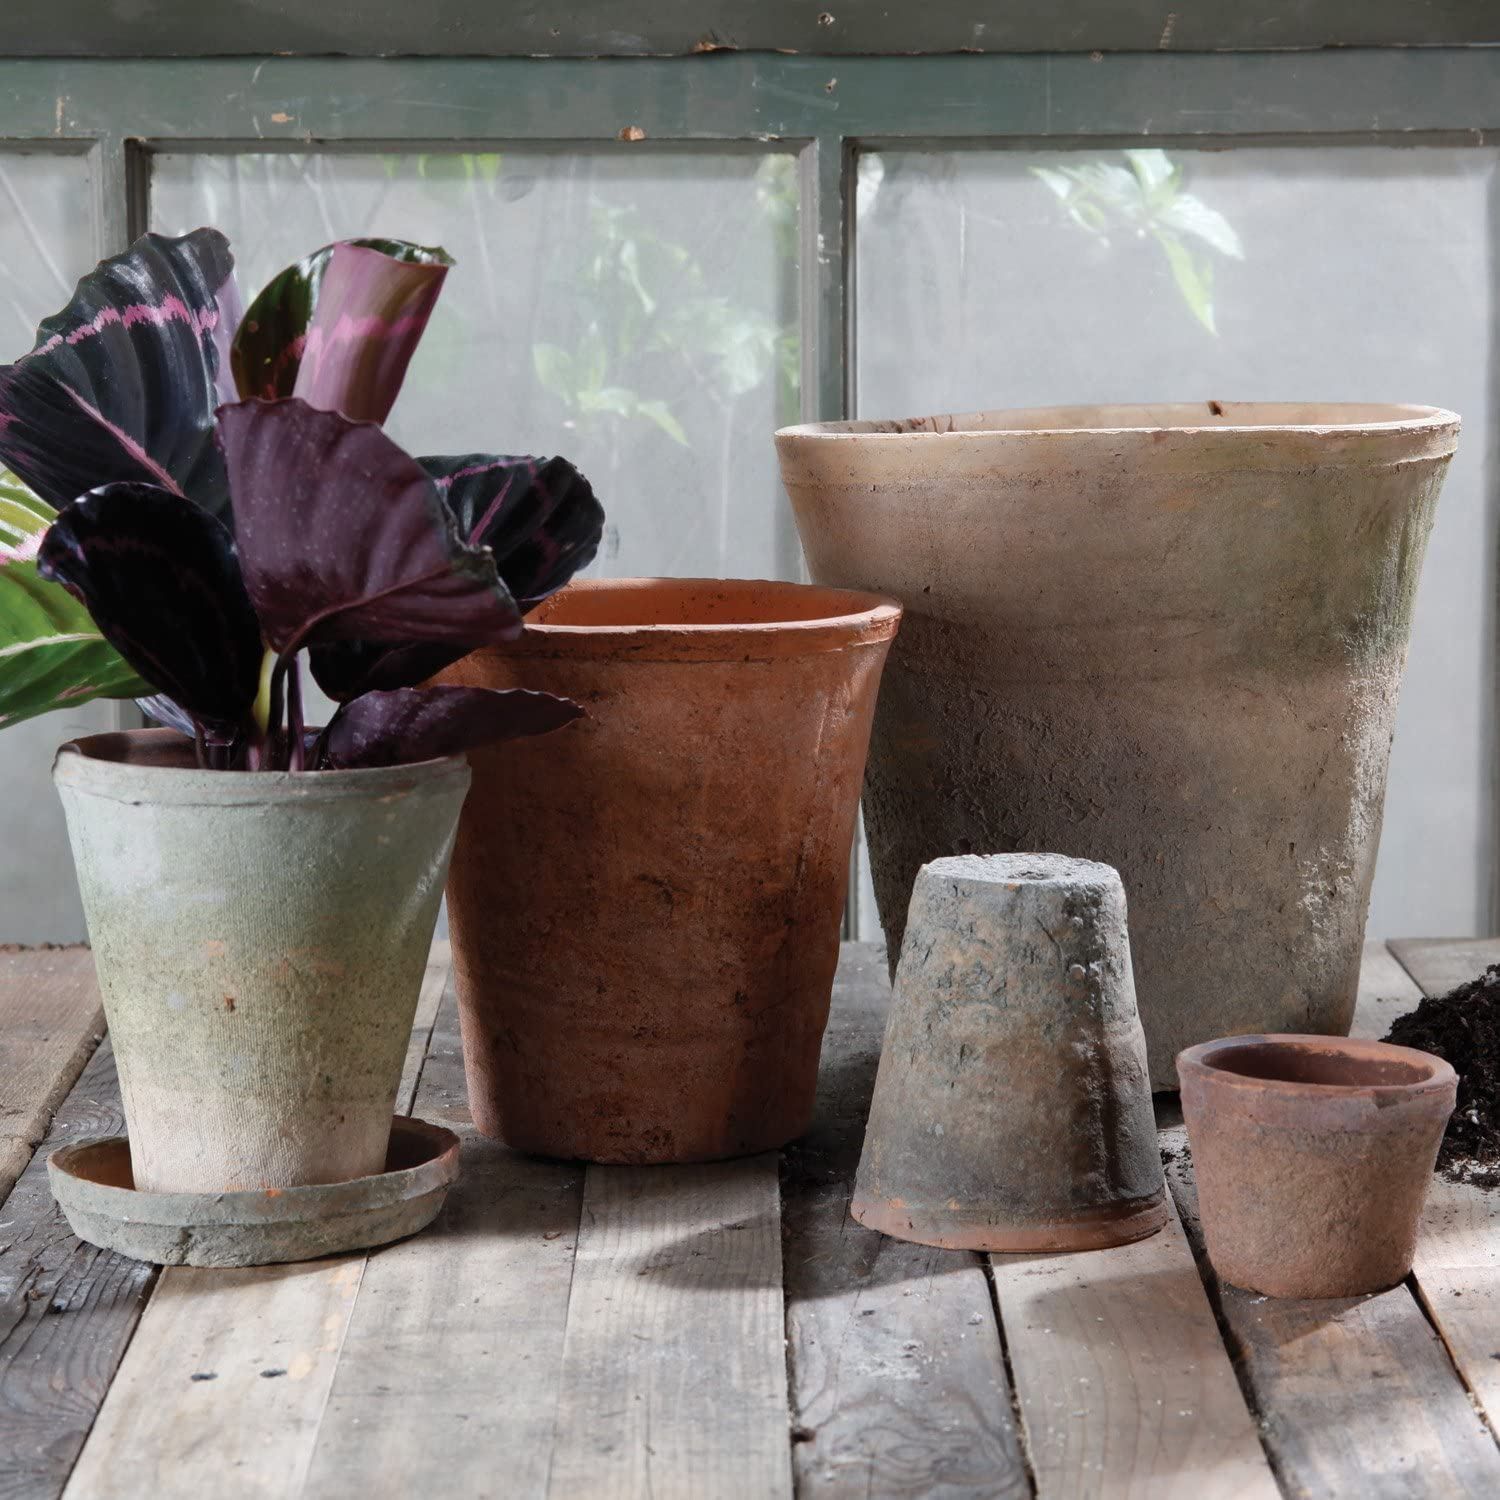 Rustic terracotta pots - come discover Hello Lovely Amazon Finds You'll Love! #agedpots #frenchcountry #homedecor #oldworldstyle #frenchfarmhouse